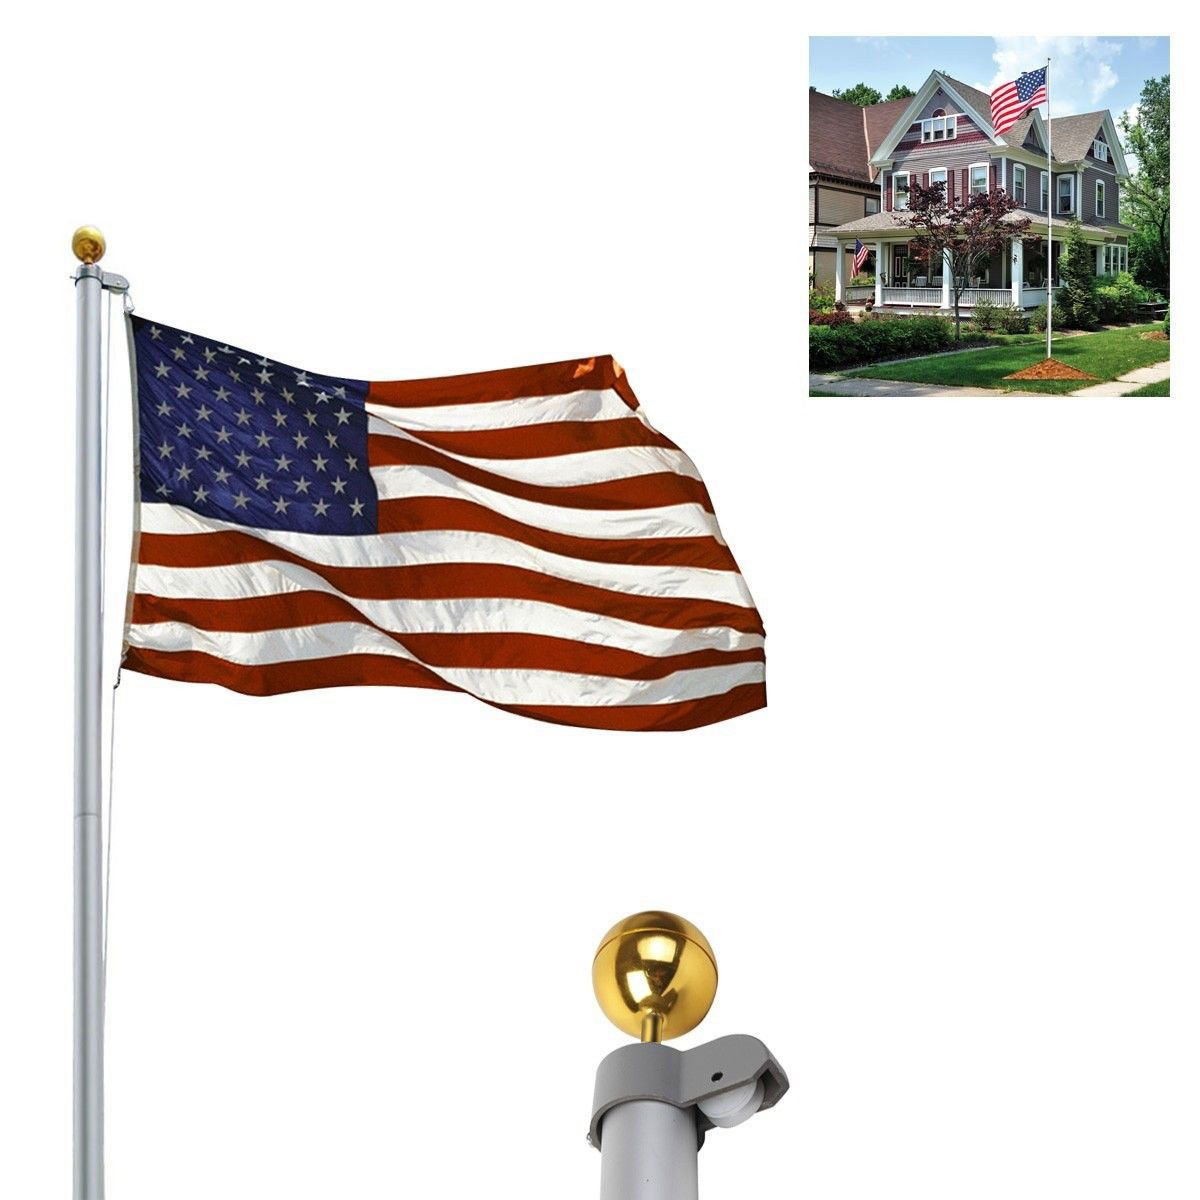 20ft Aluminum Sectional Flagpole Kit Outdoor Halyard Pole + 1PC US American Flag 21 product ratings